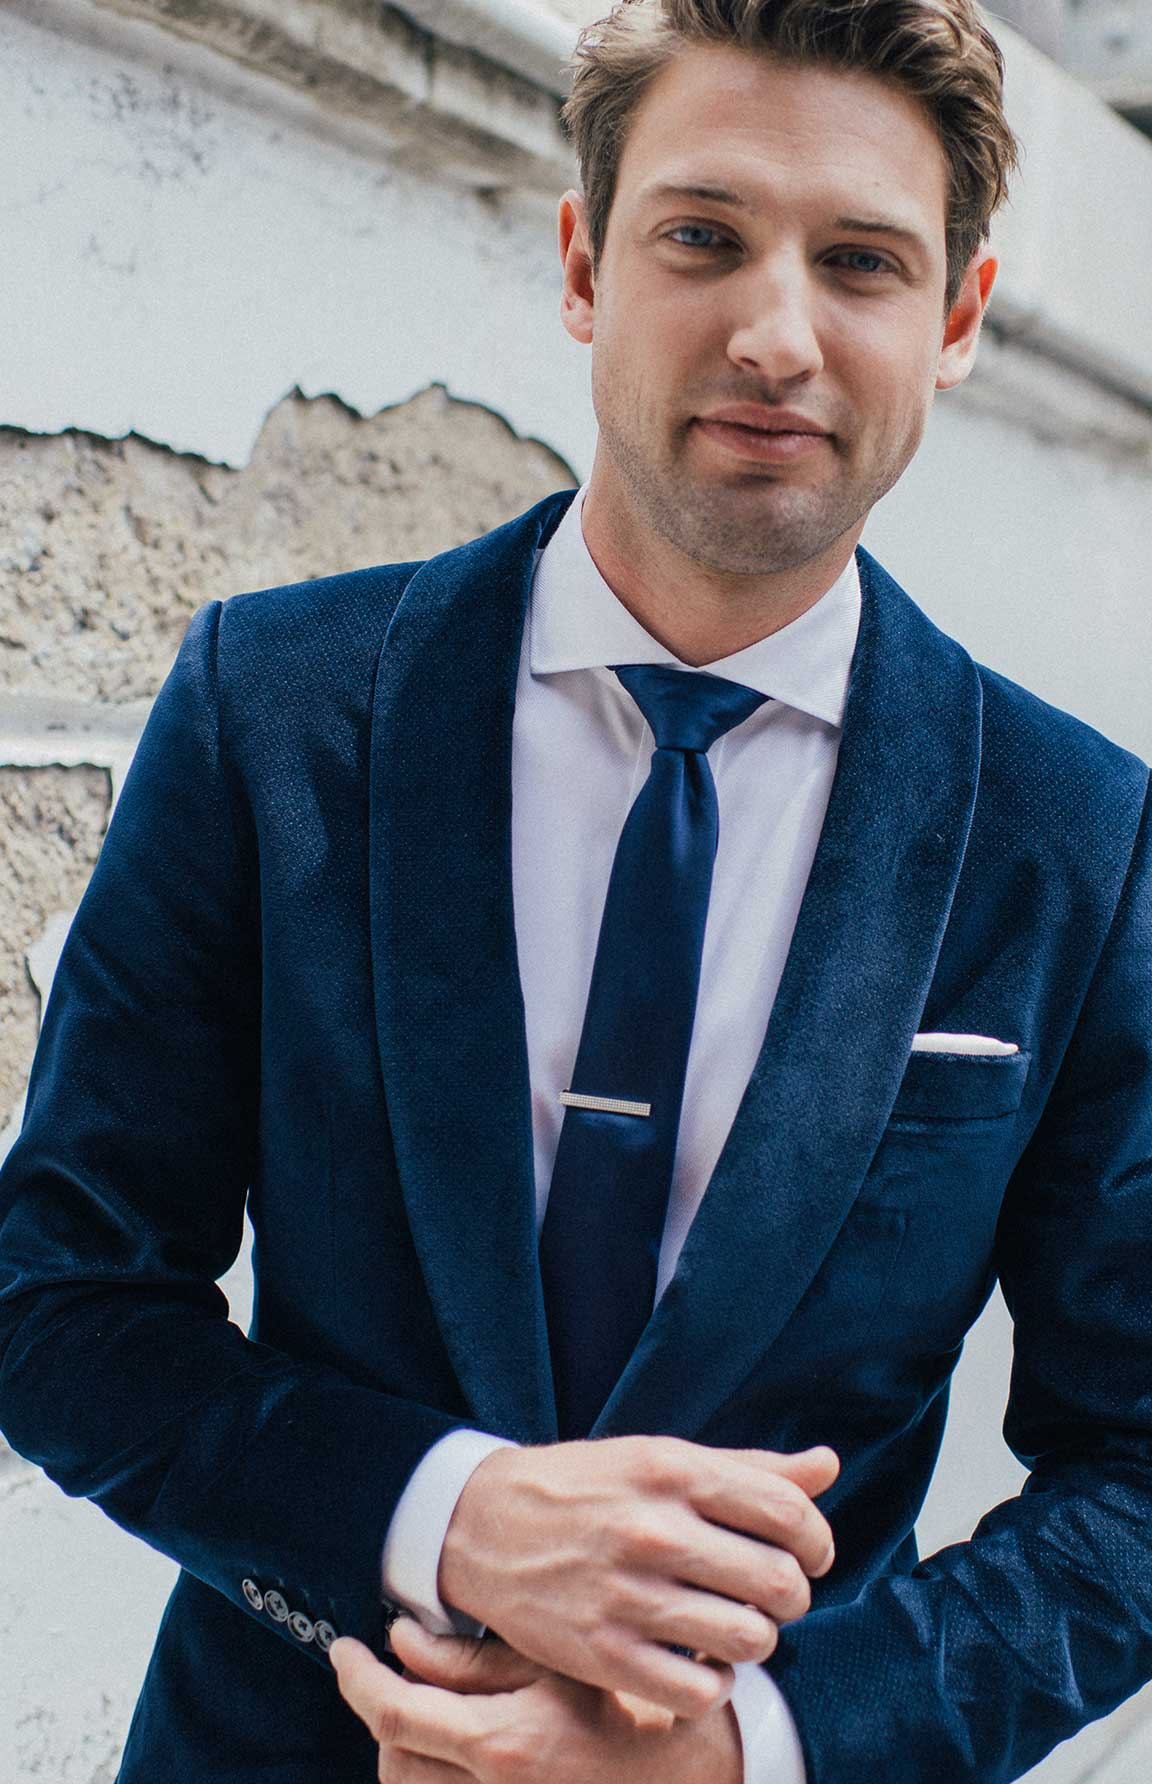 Is your perfect blazer velvet with a shawl collar? Maybe!